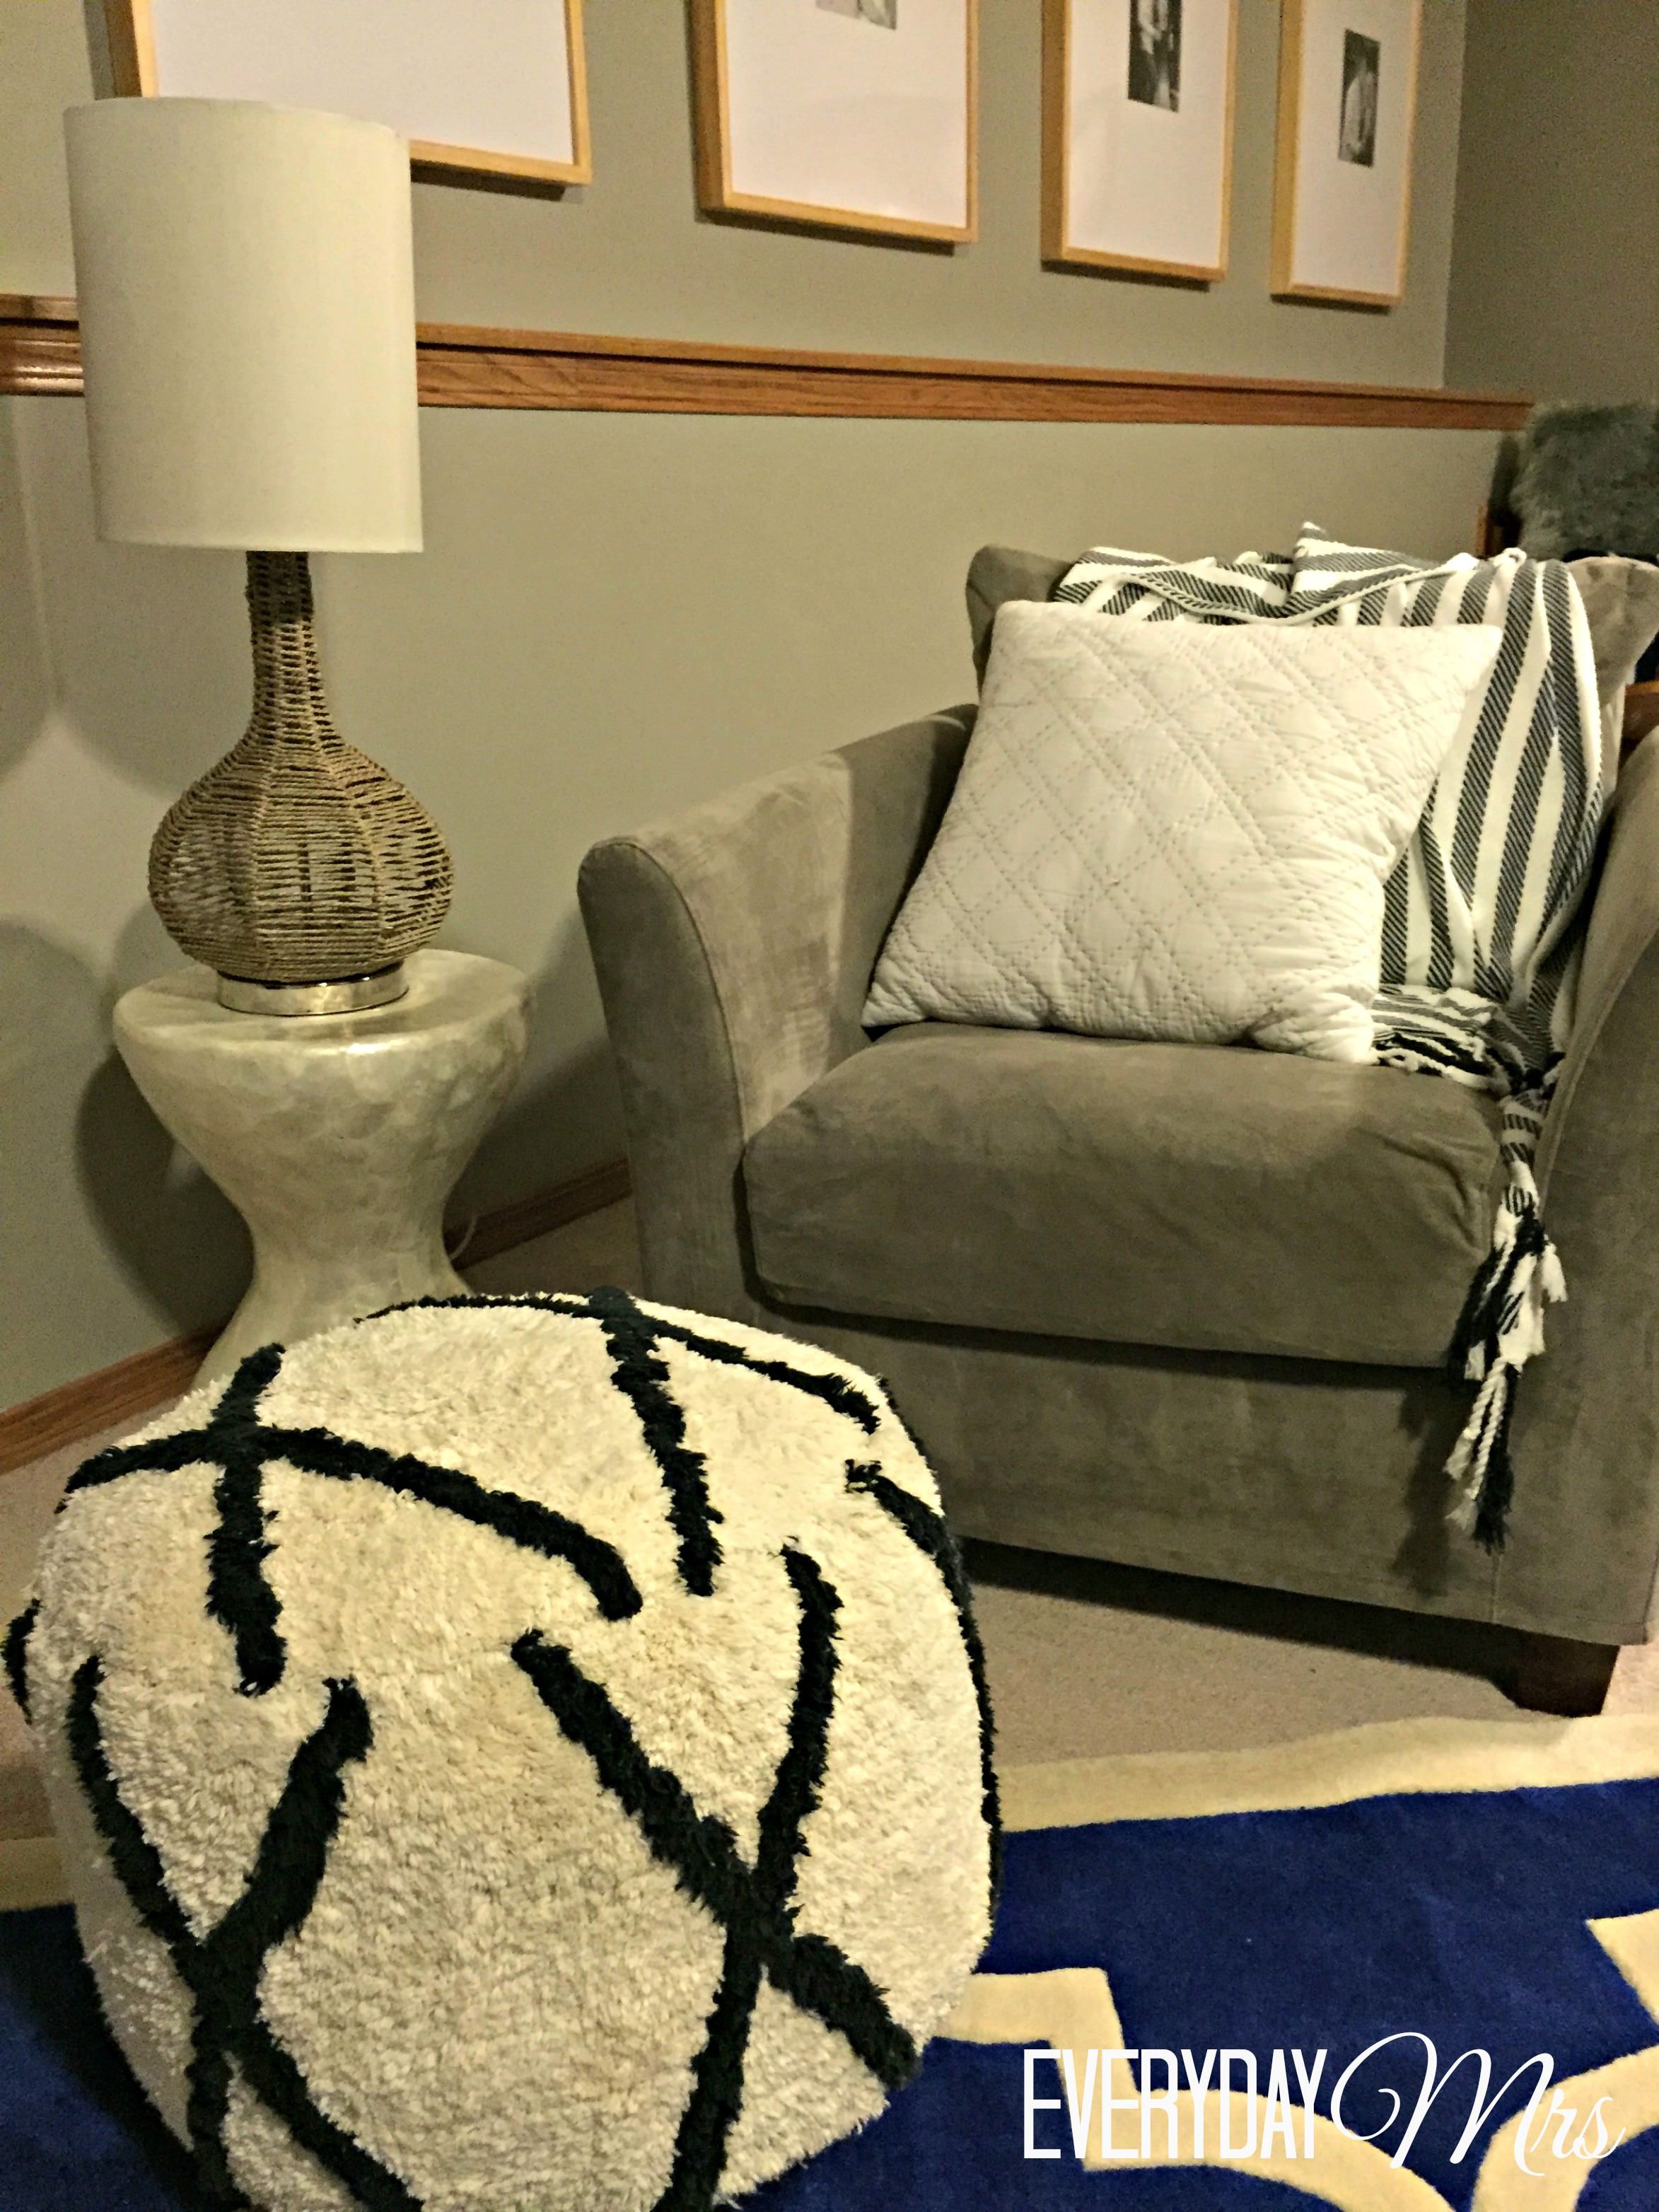 Holiday home tour part 2 everyday mrs this chair is also from world market the side table from tj maxx and the pouf from target nate berkus you rock geotapseo Choice Image